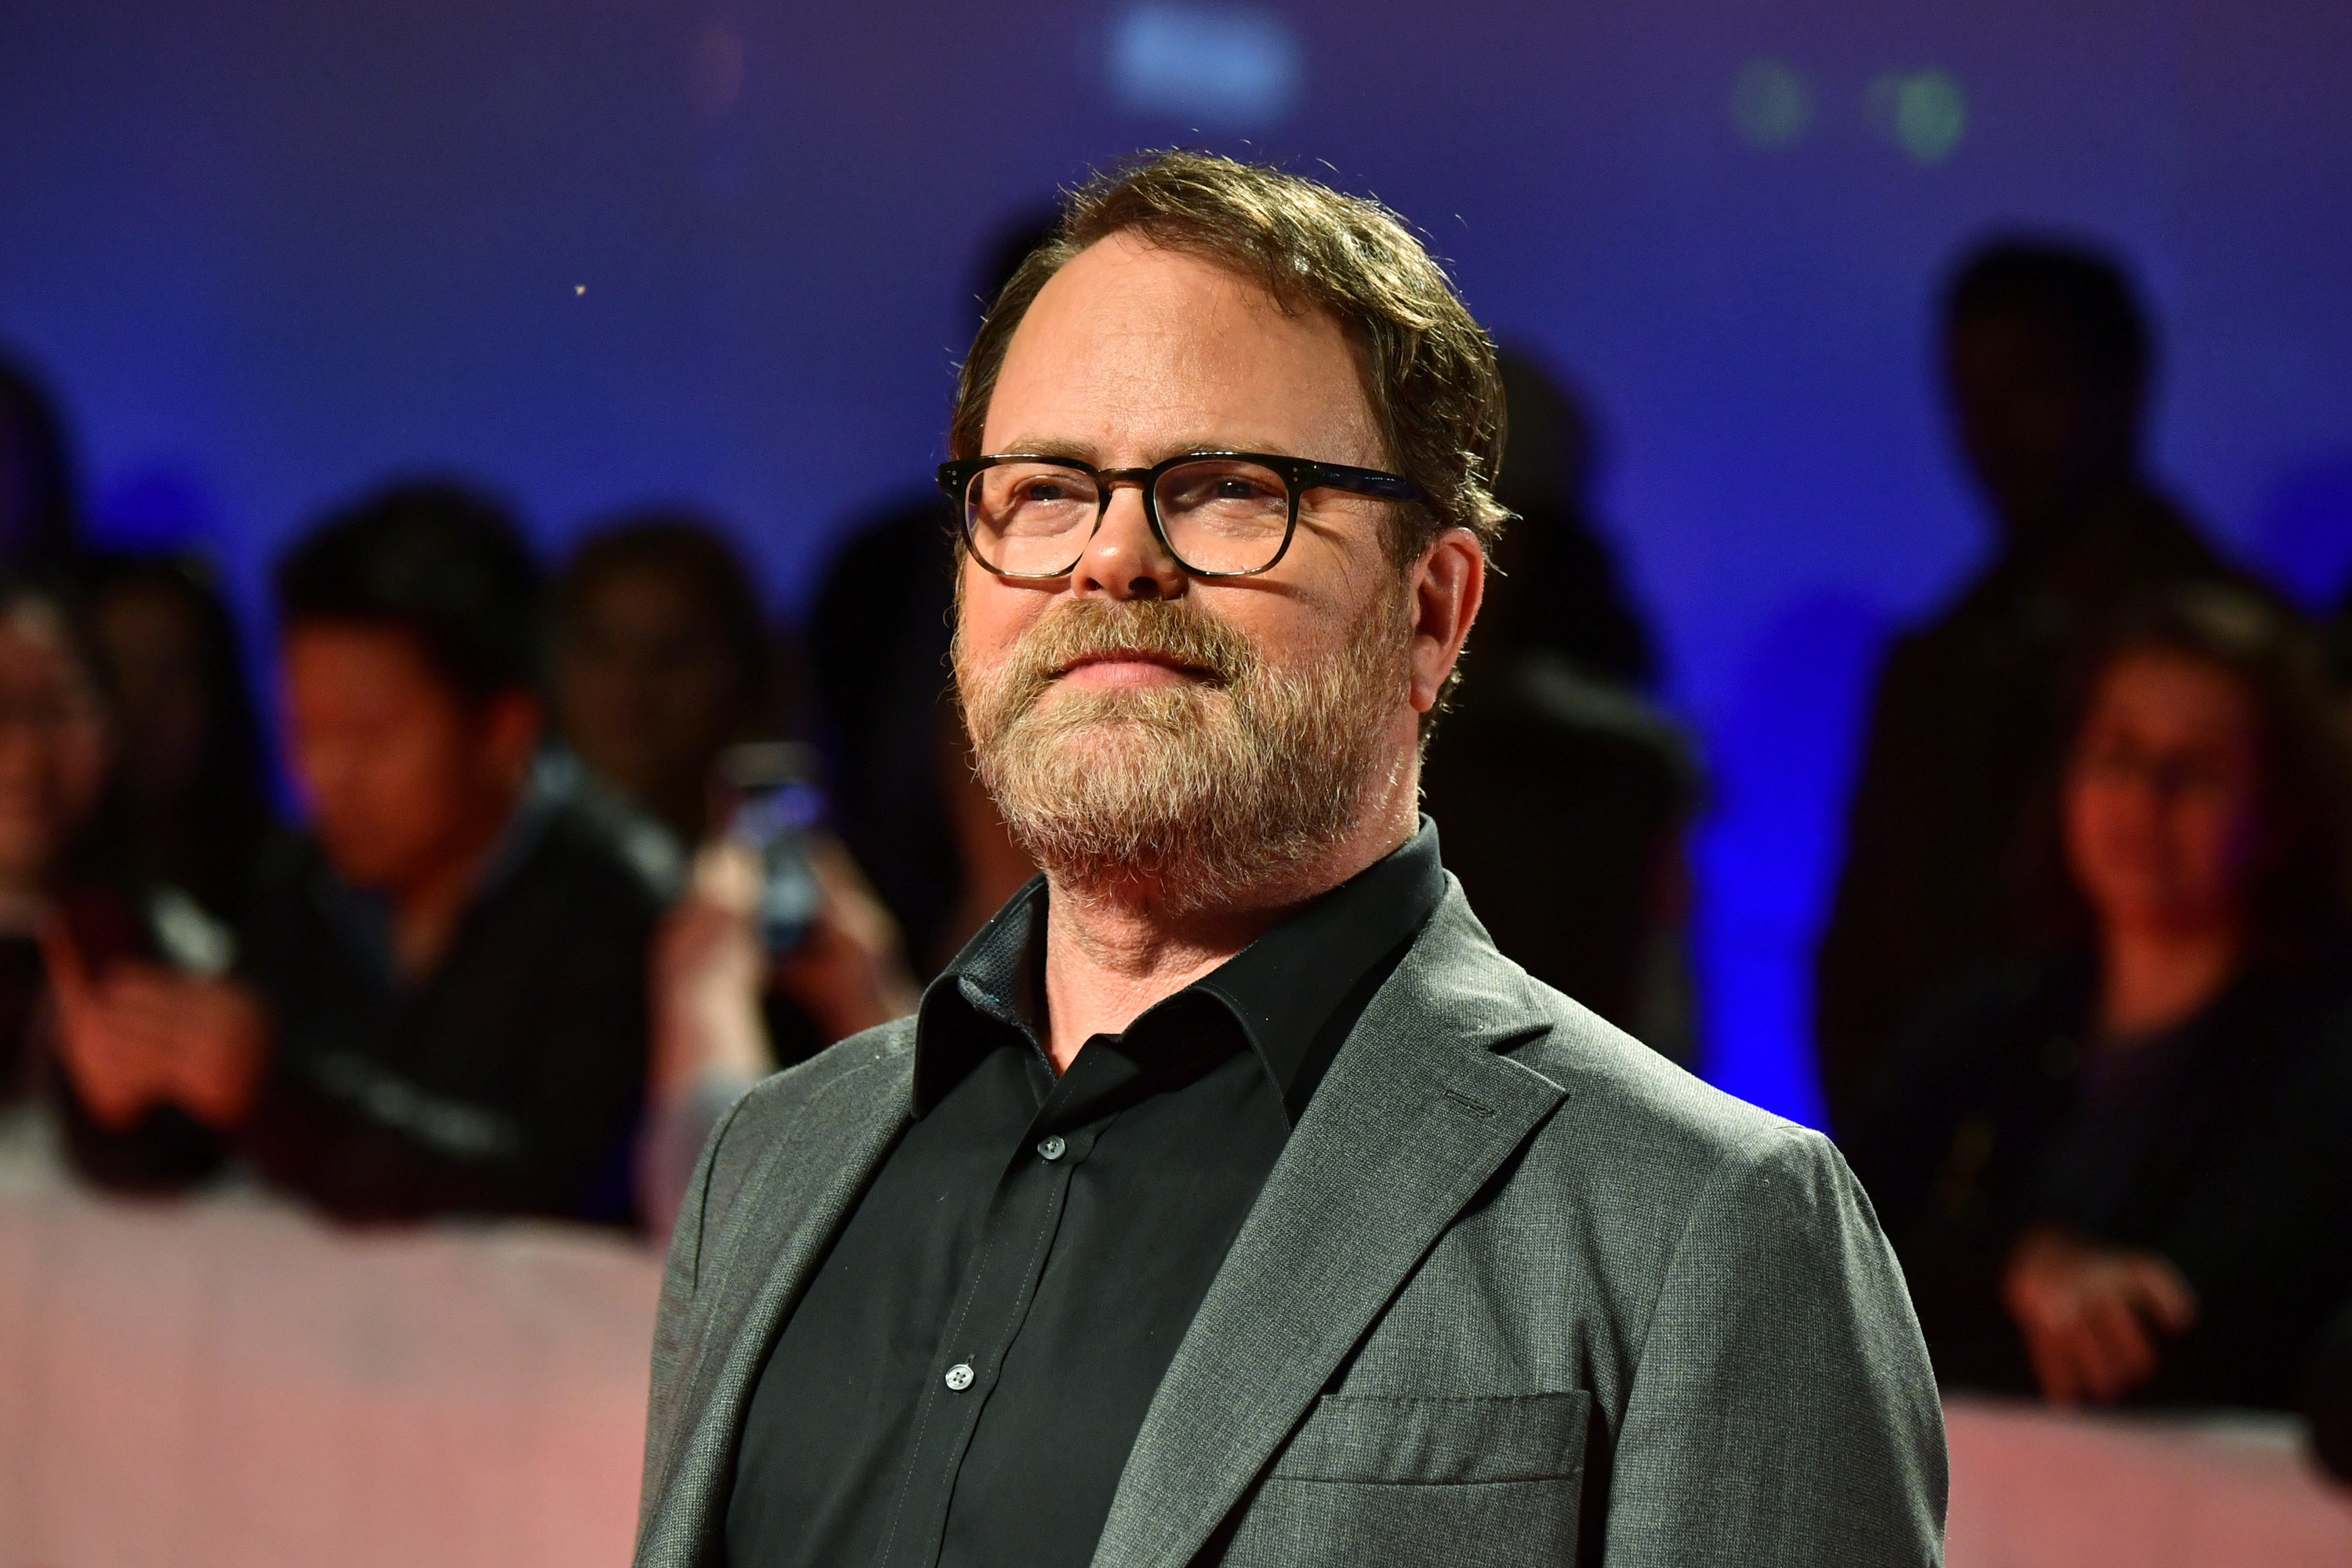 Photo of Rainn Wilson in glasses and a suit